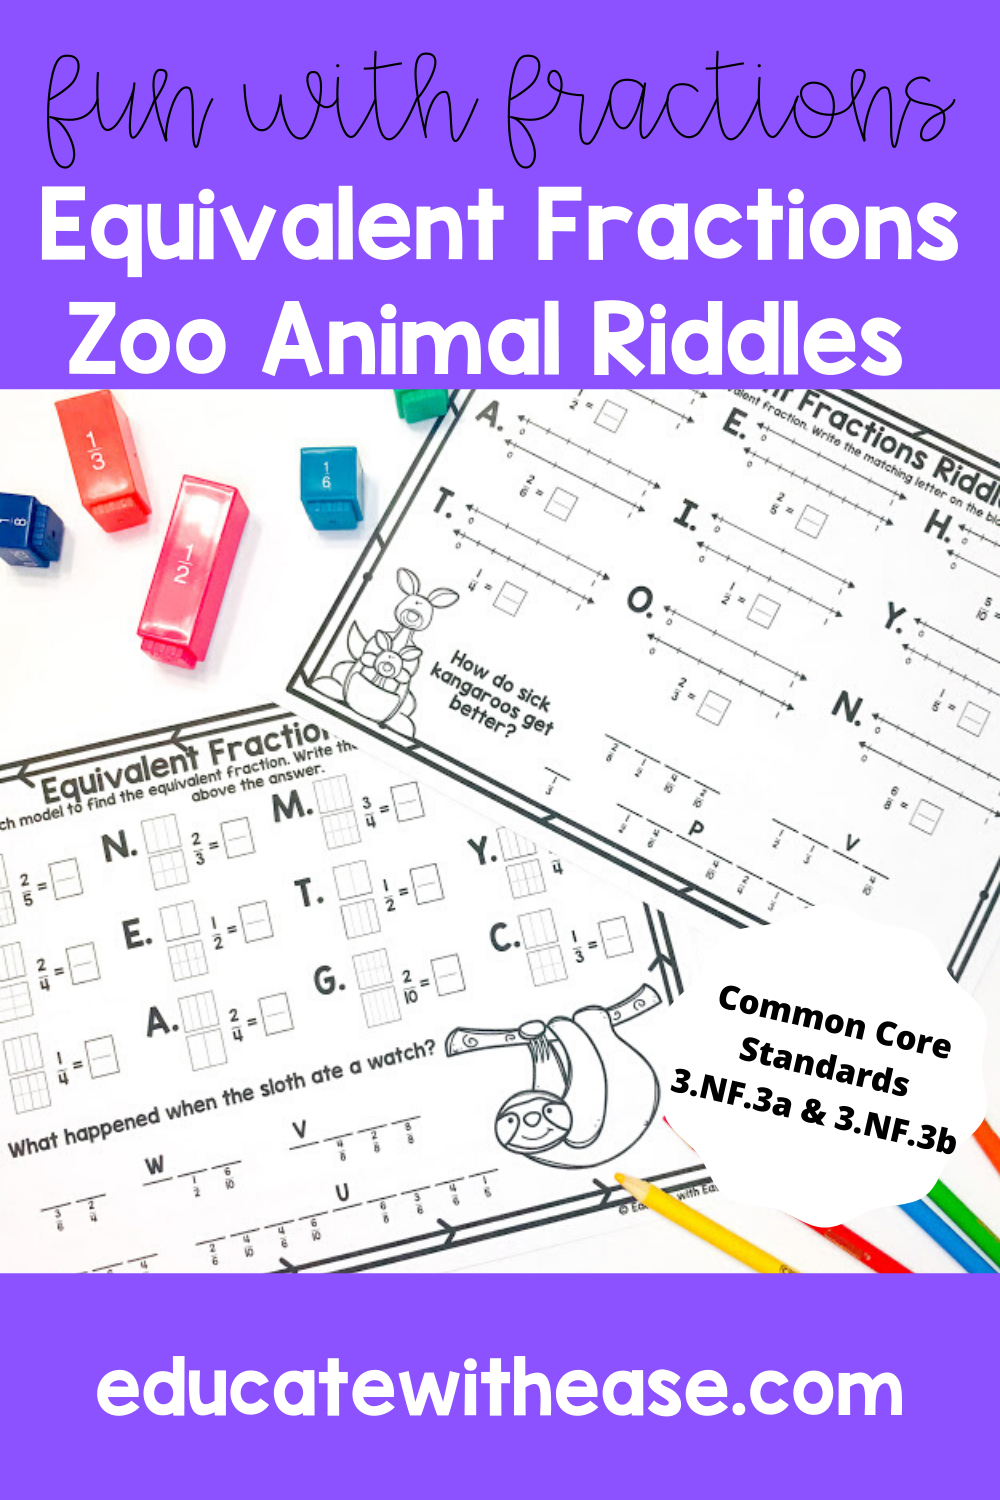 Zoo Equivalent Fractions Using Models & Number Lines